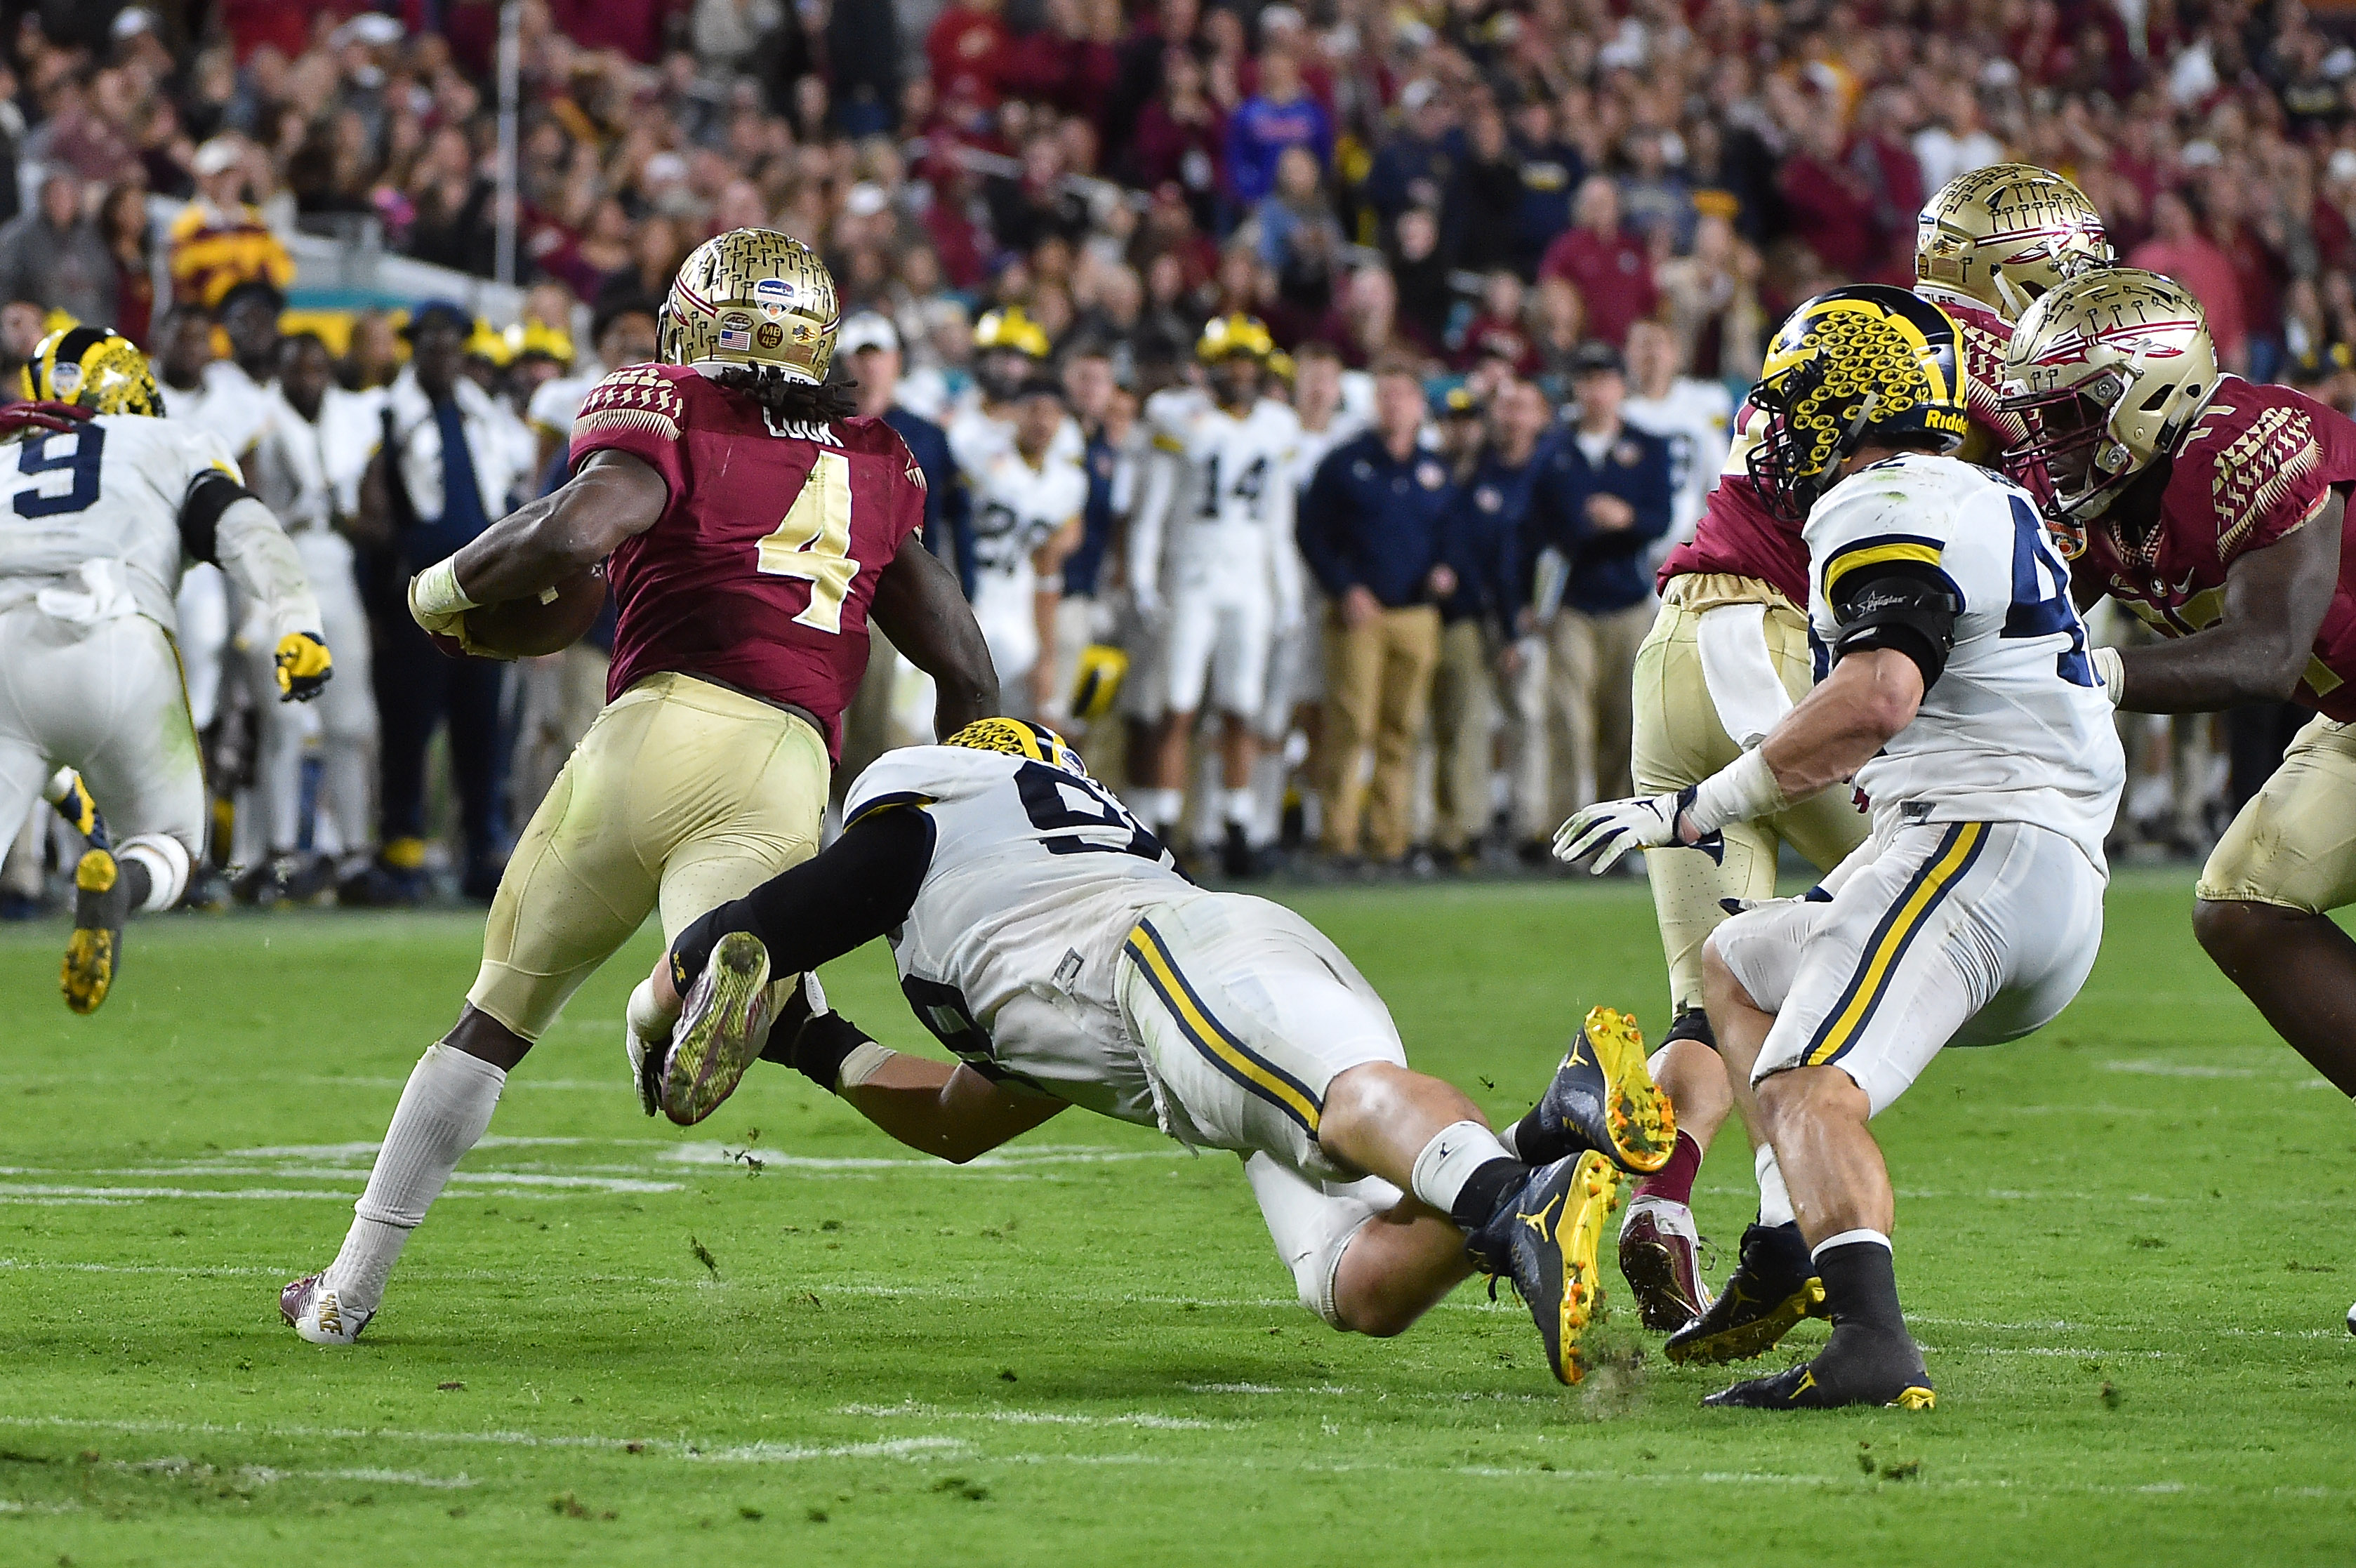 9778672-ncaa-football-orange-bowl-michigan-vs-florida-state